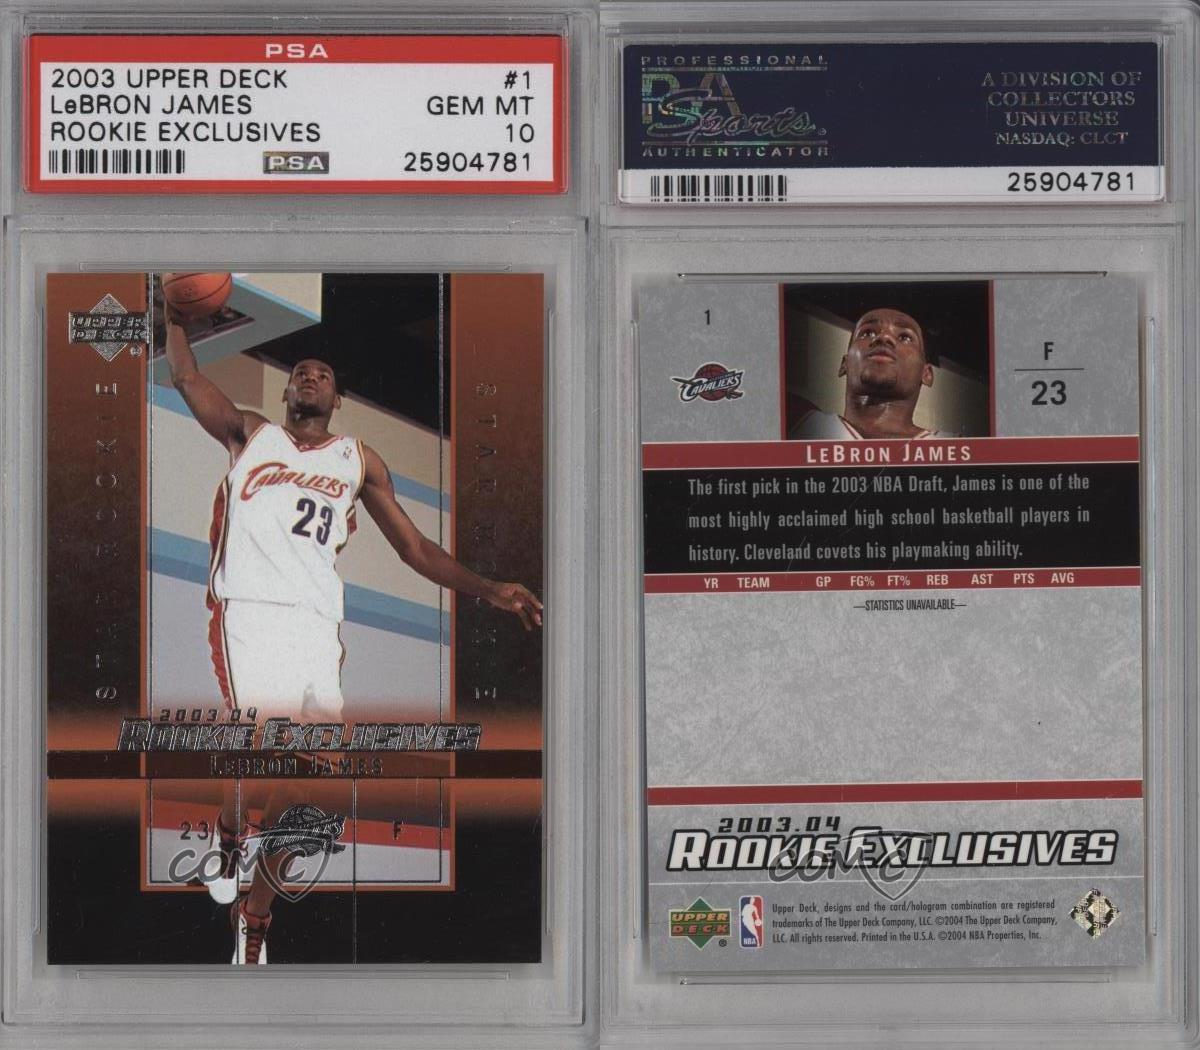 2003 Upper Deck Rookie Exclusives 1 Lebron James PSA 10